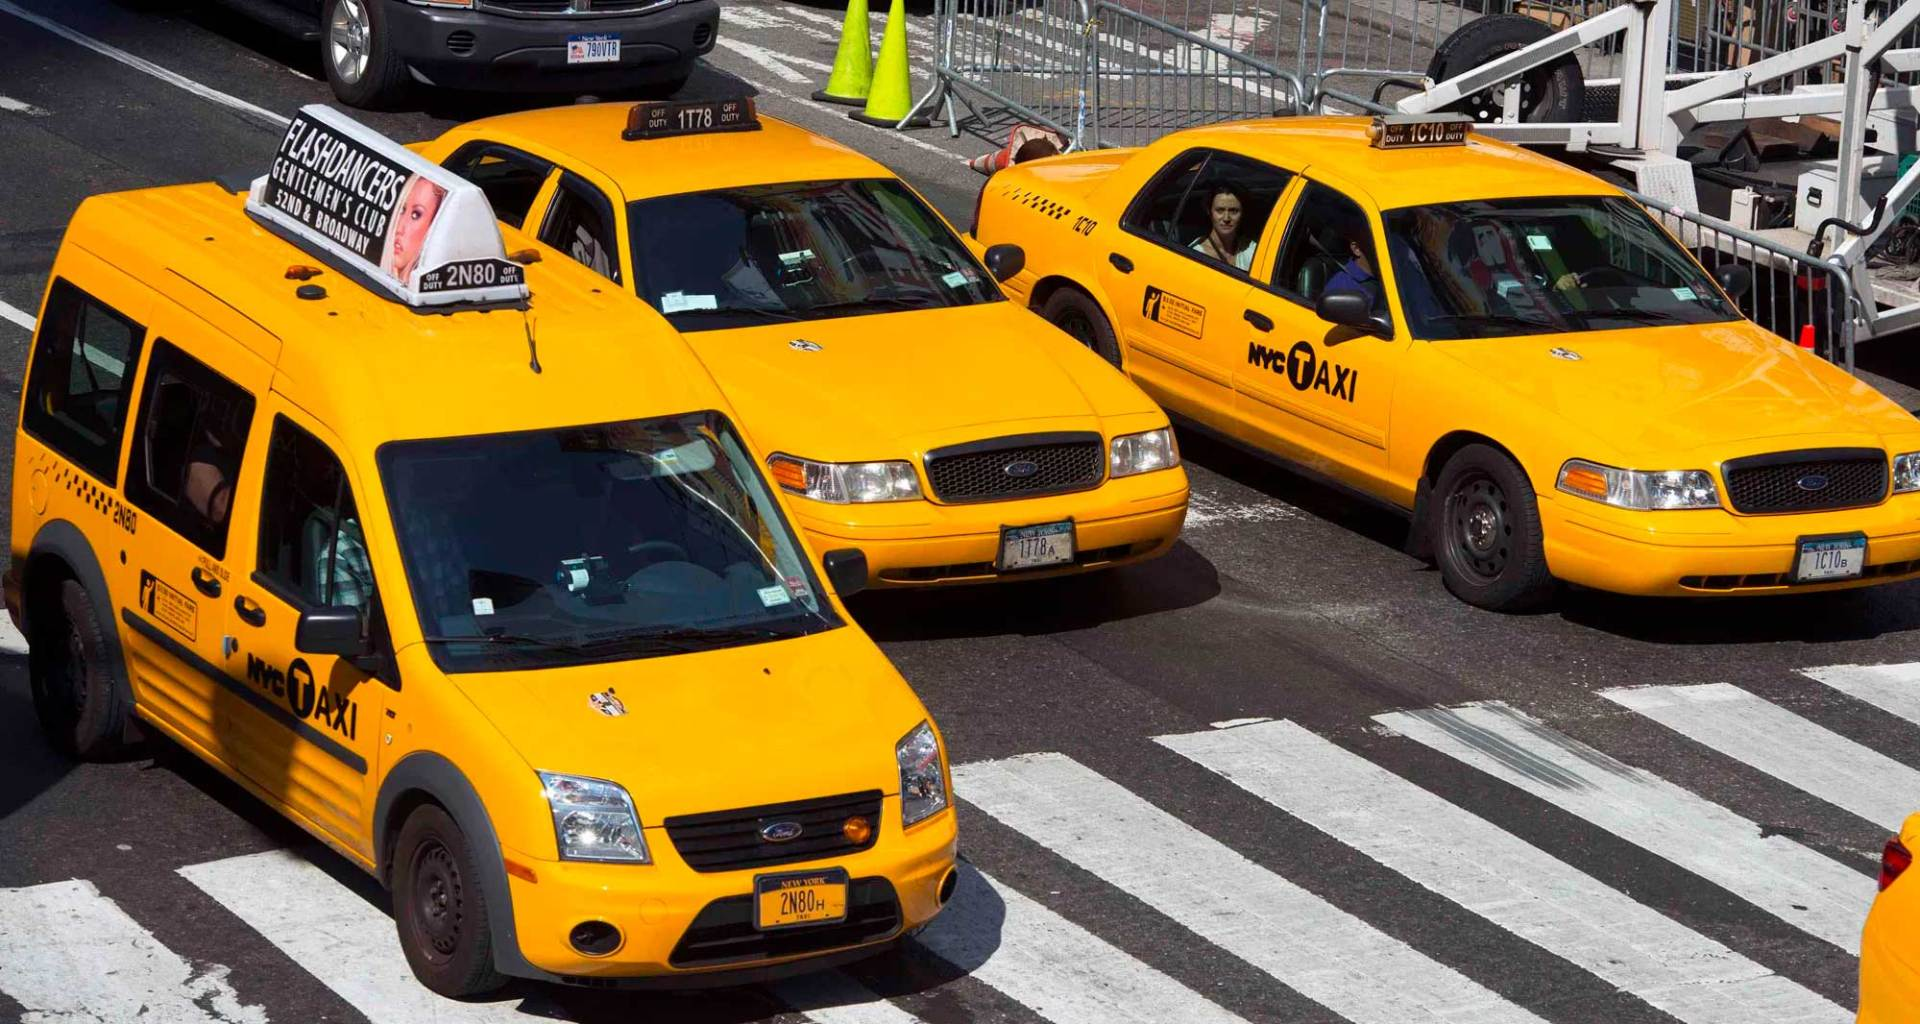 Three taxis stopped on the street at an intersection and crosswalk.